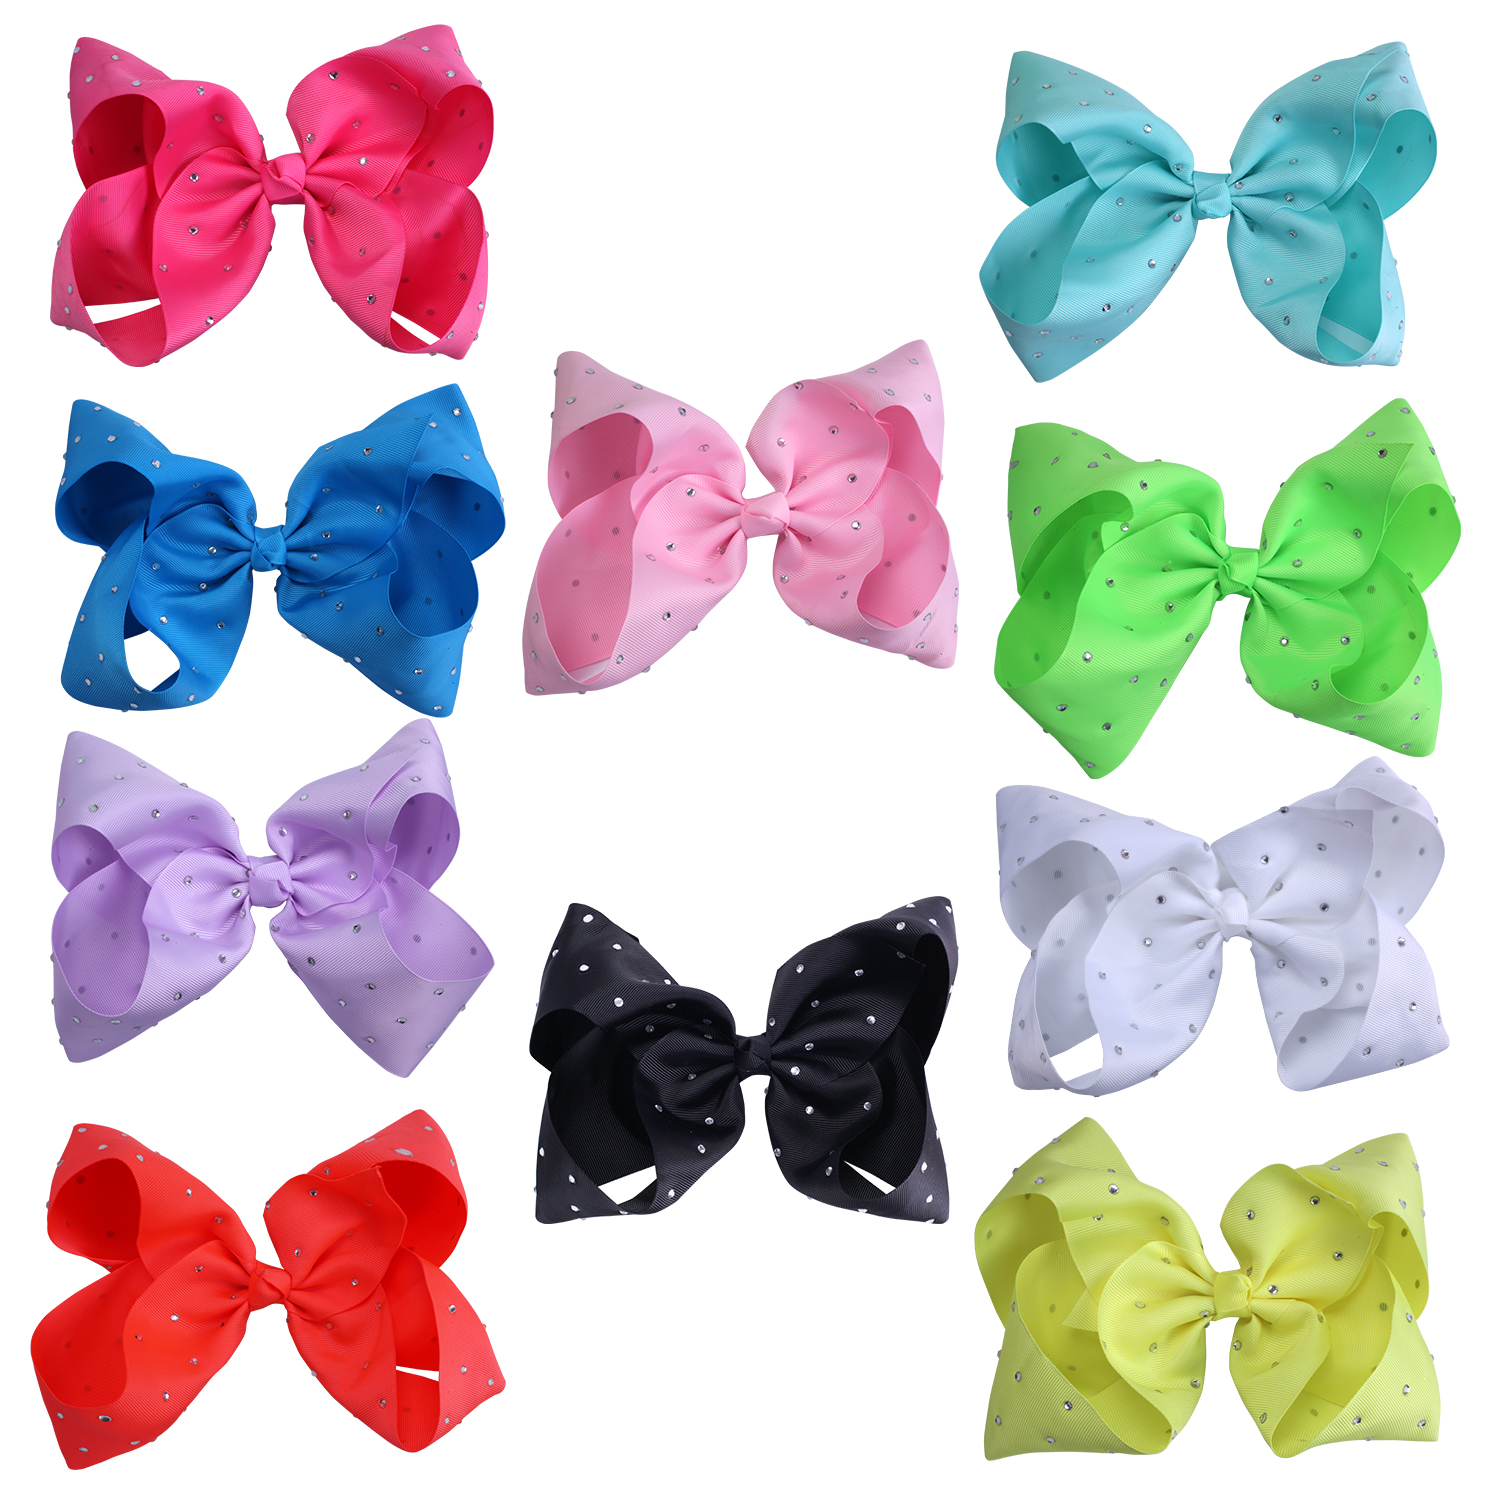 Large Hair Bow Rhinestone Baby Girls Accessories 8 Inch 10 Pcs Sorted Colors